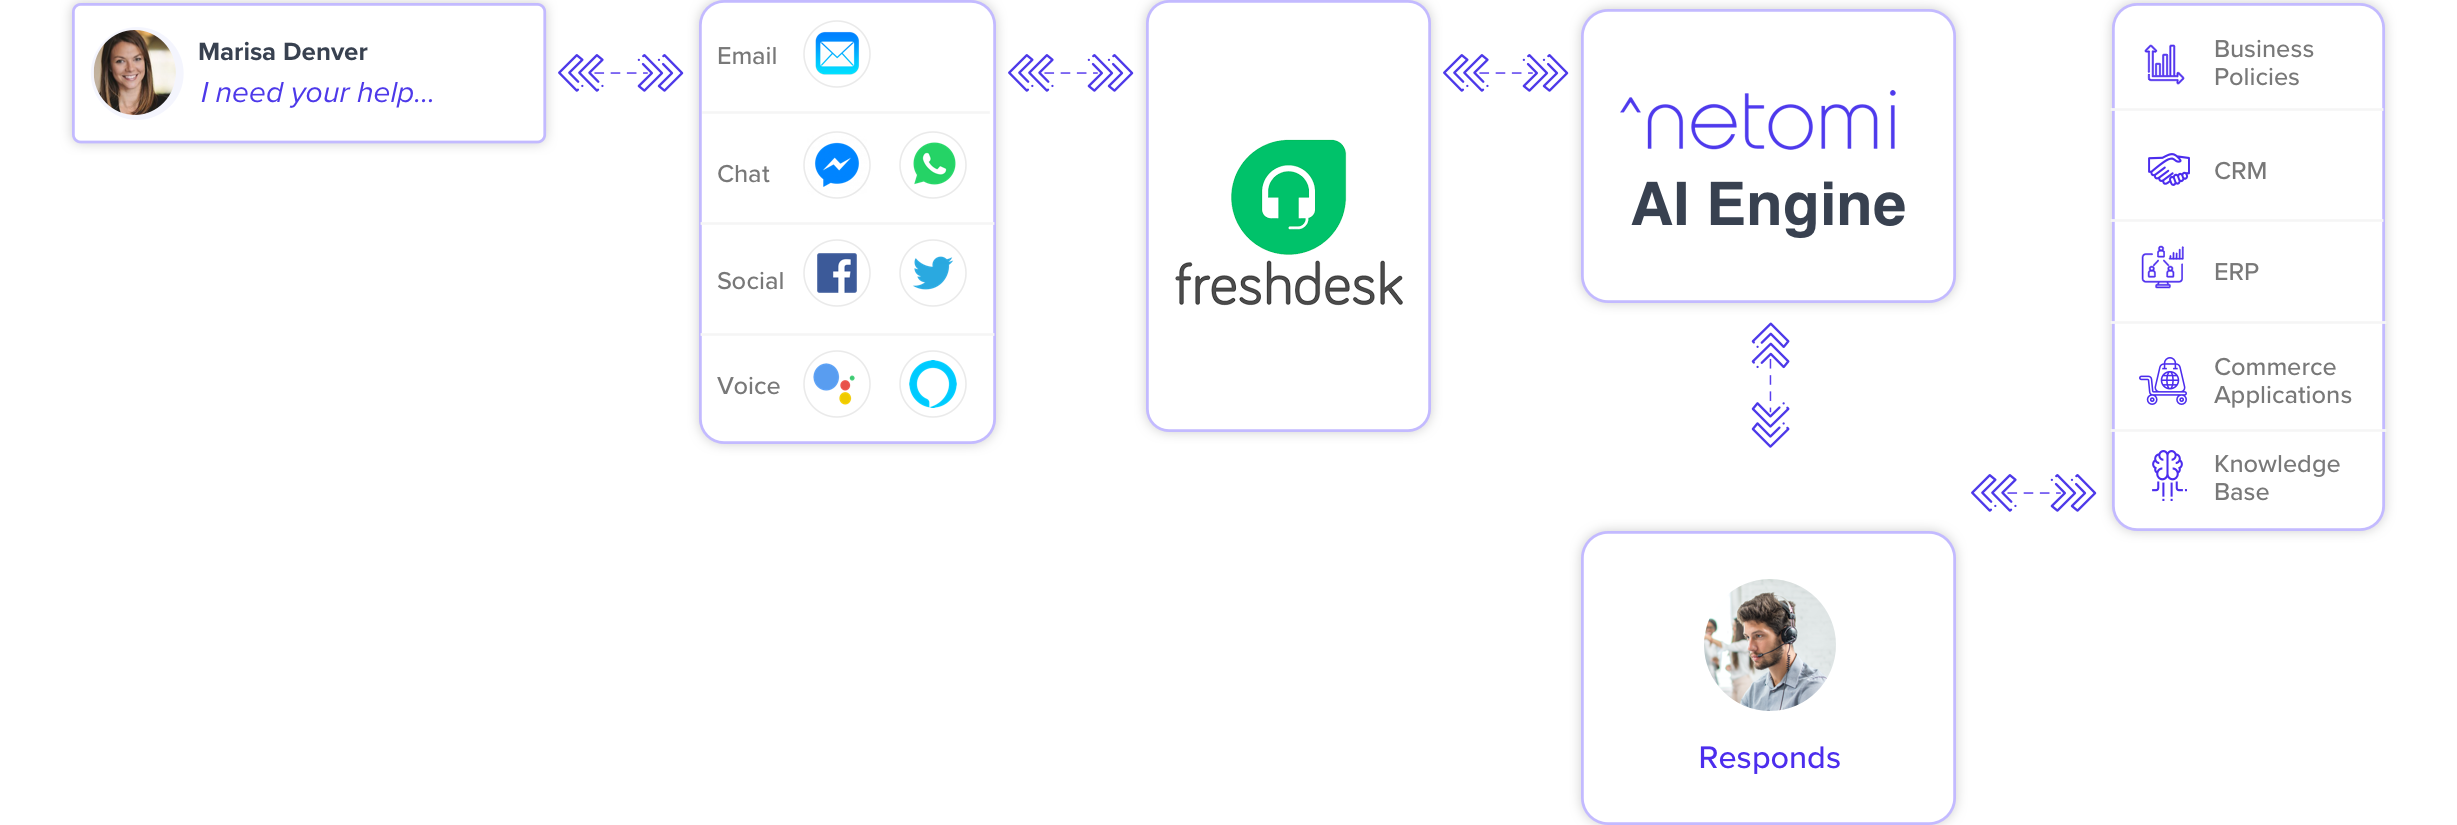 Freshdesk Chat workflow